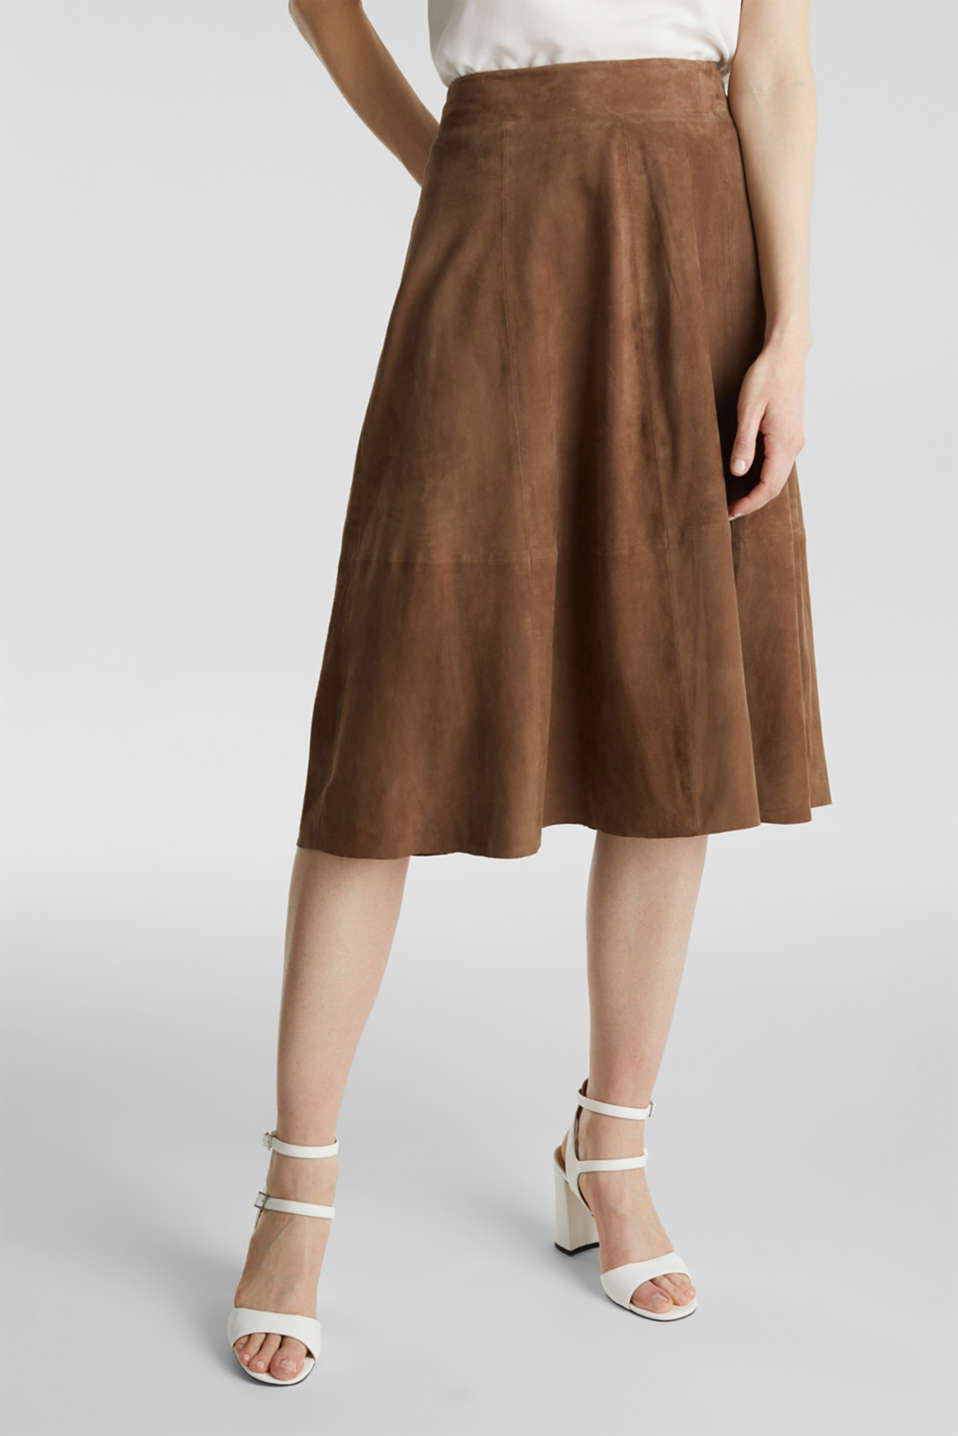 Flared midi skirt made of leather